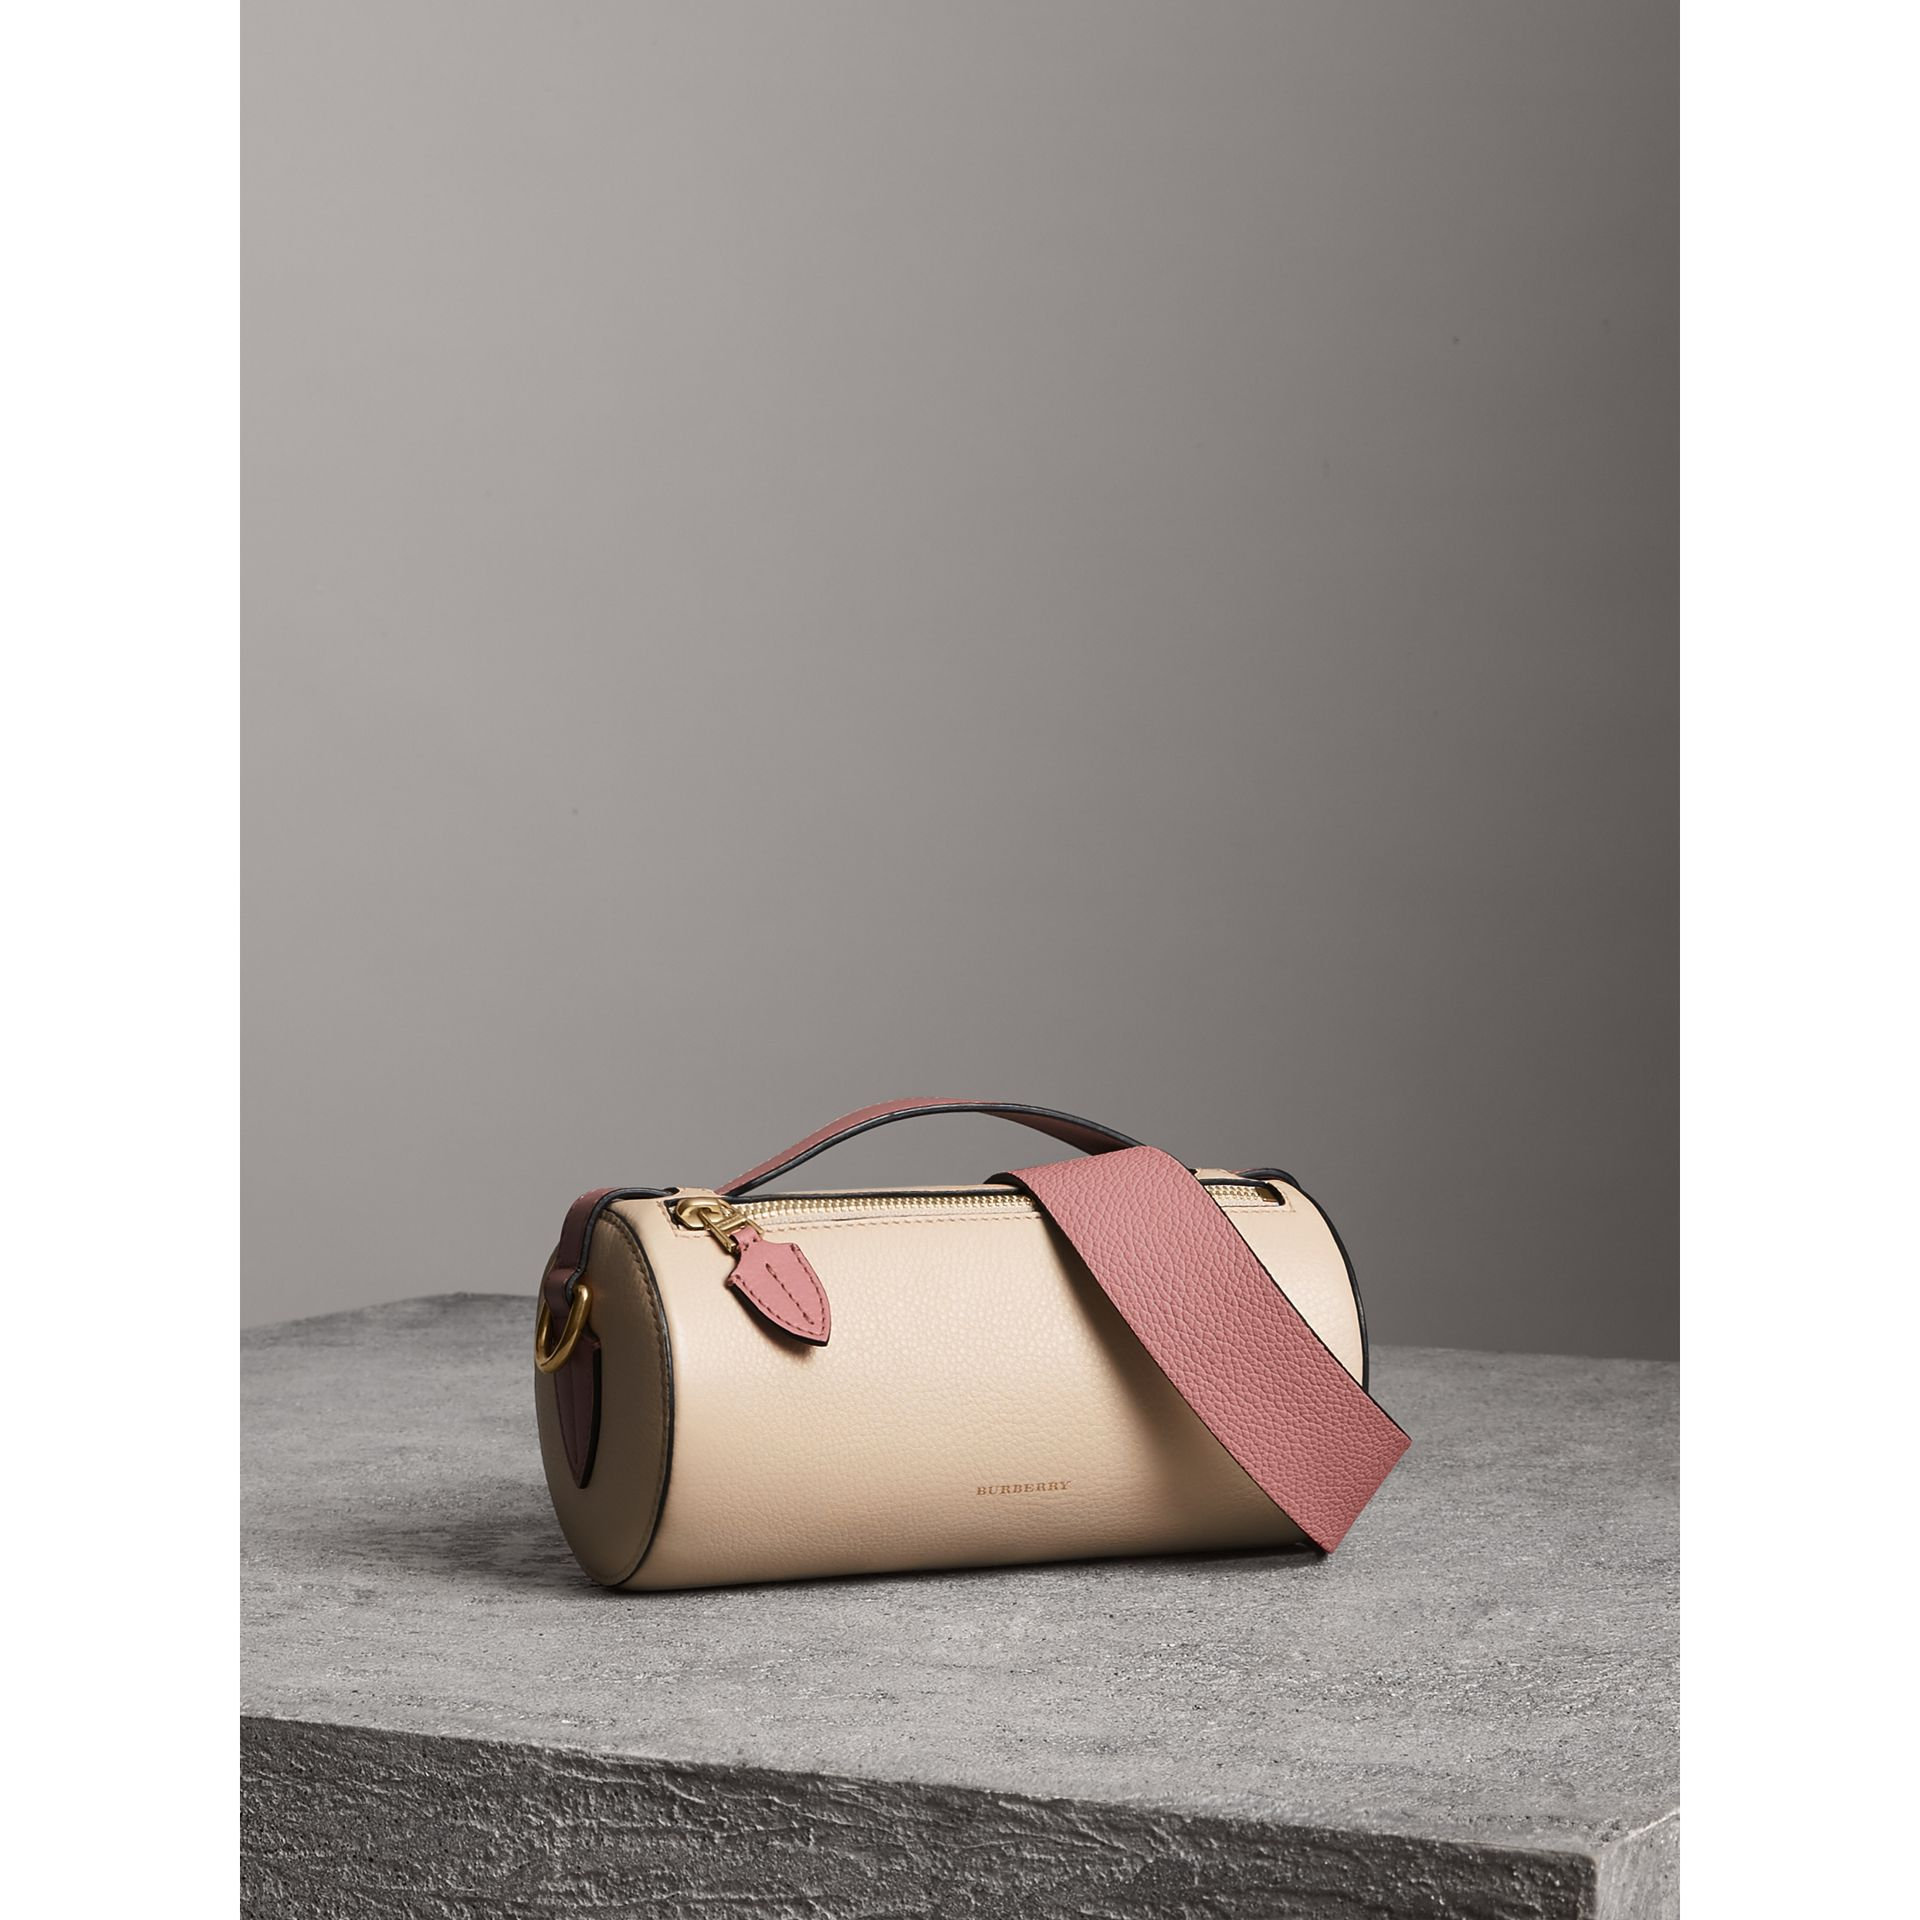 Sac The Barrel en cuir (Calcaire/rose Cendré) - Femme | Burberry Canada - photo de la galerie 4